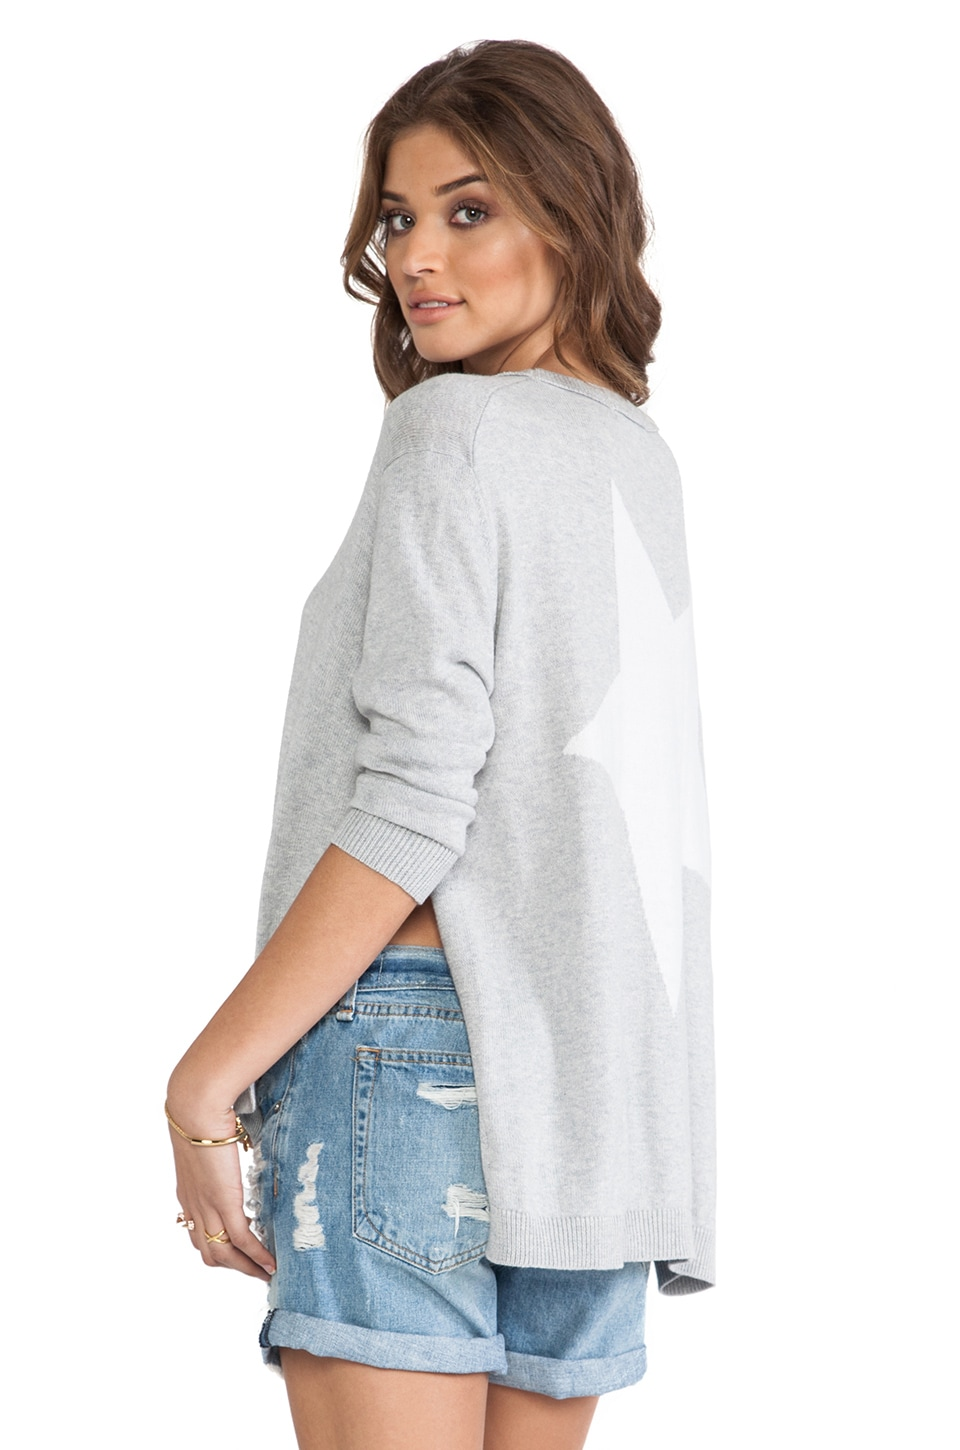 360CASHMERE Celeste Star Sweater in Heather Grey & Ivory Star